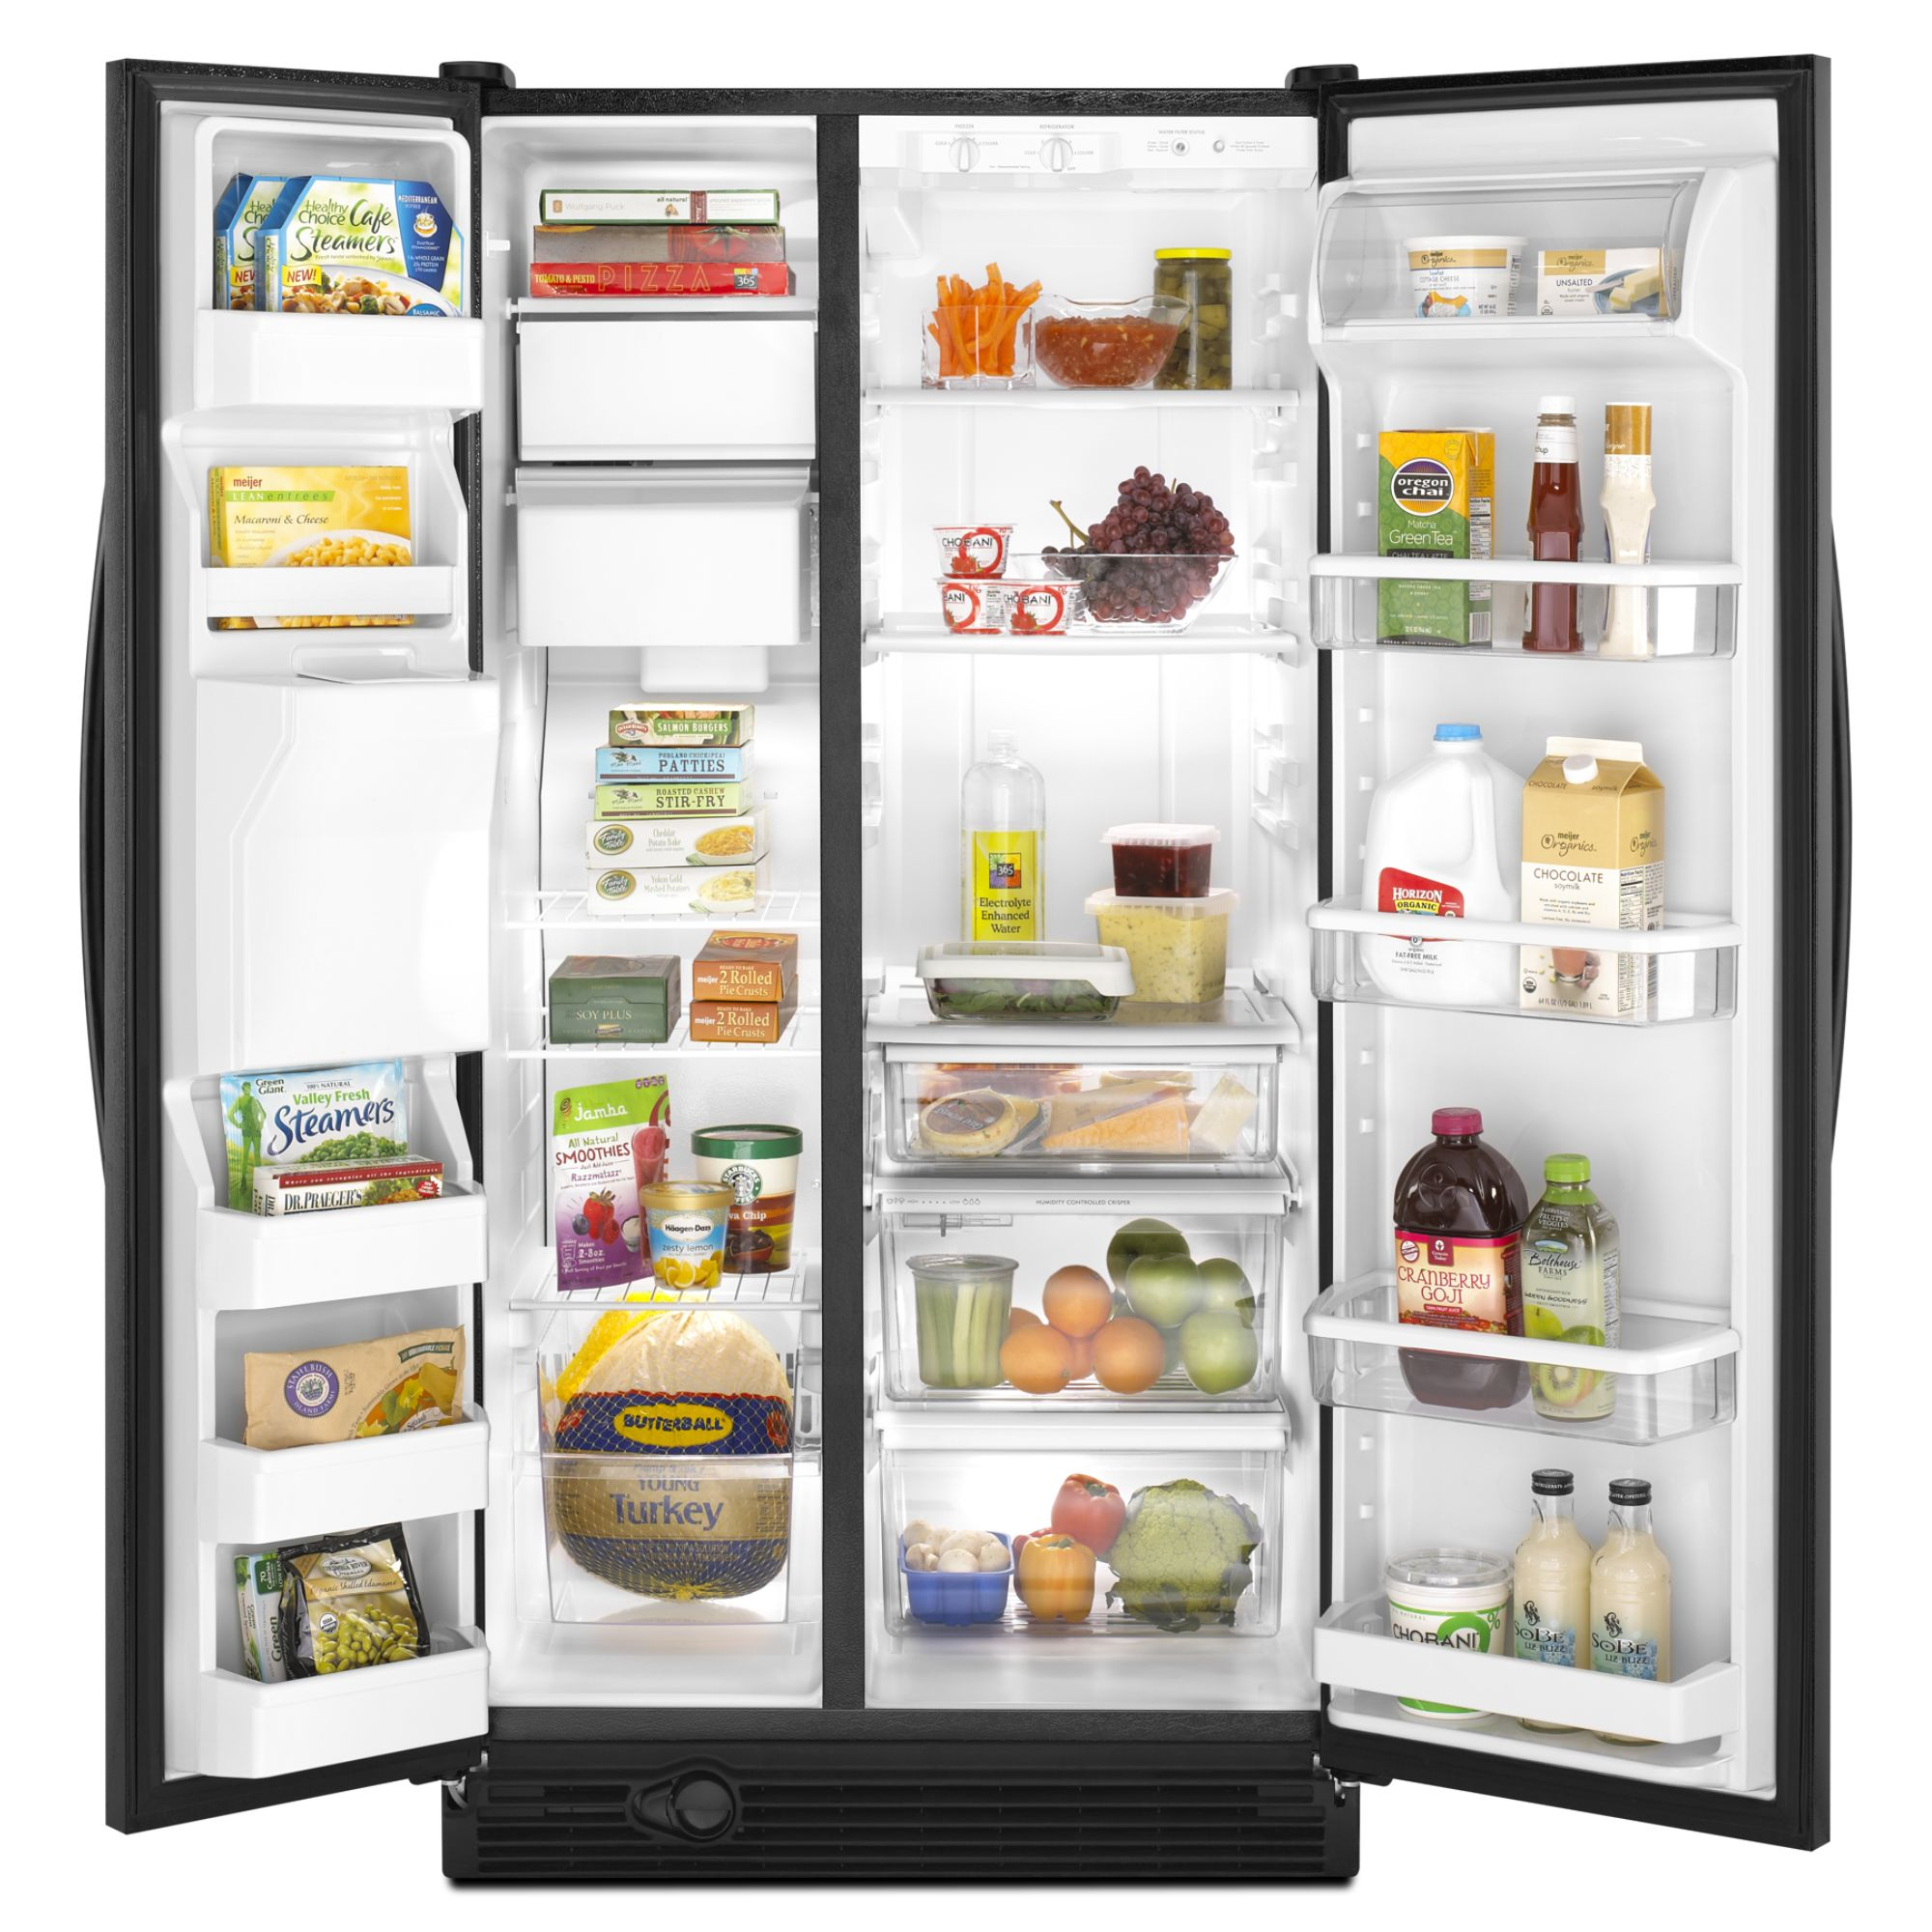 Kenmore 25.1 cu. ft. Side-by-Side Refrigerator w/ Ice & Water Dispenser - Black